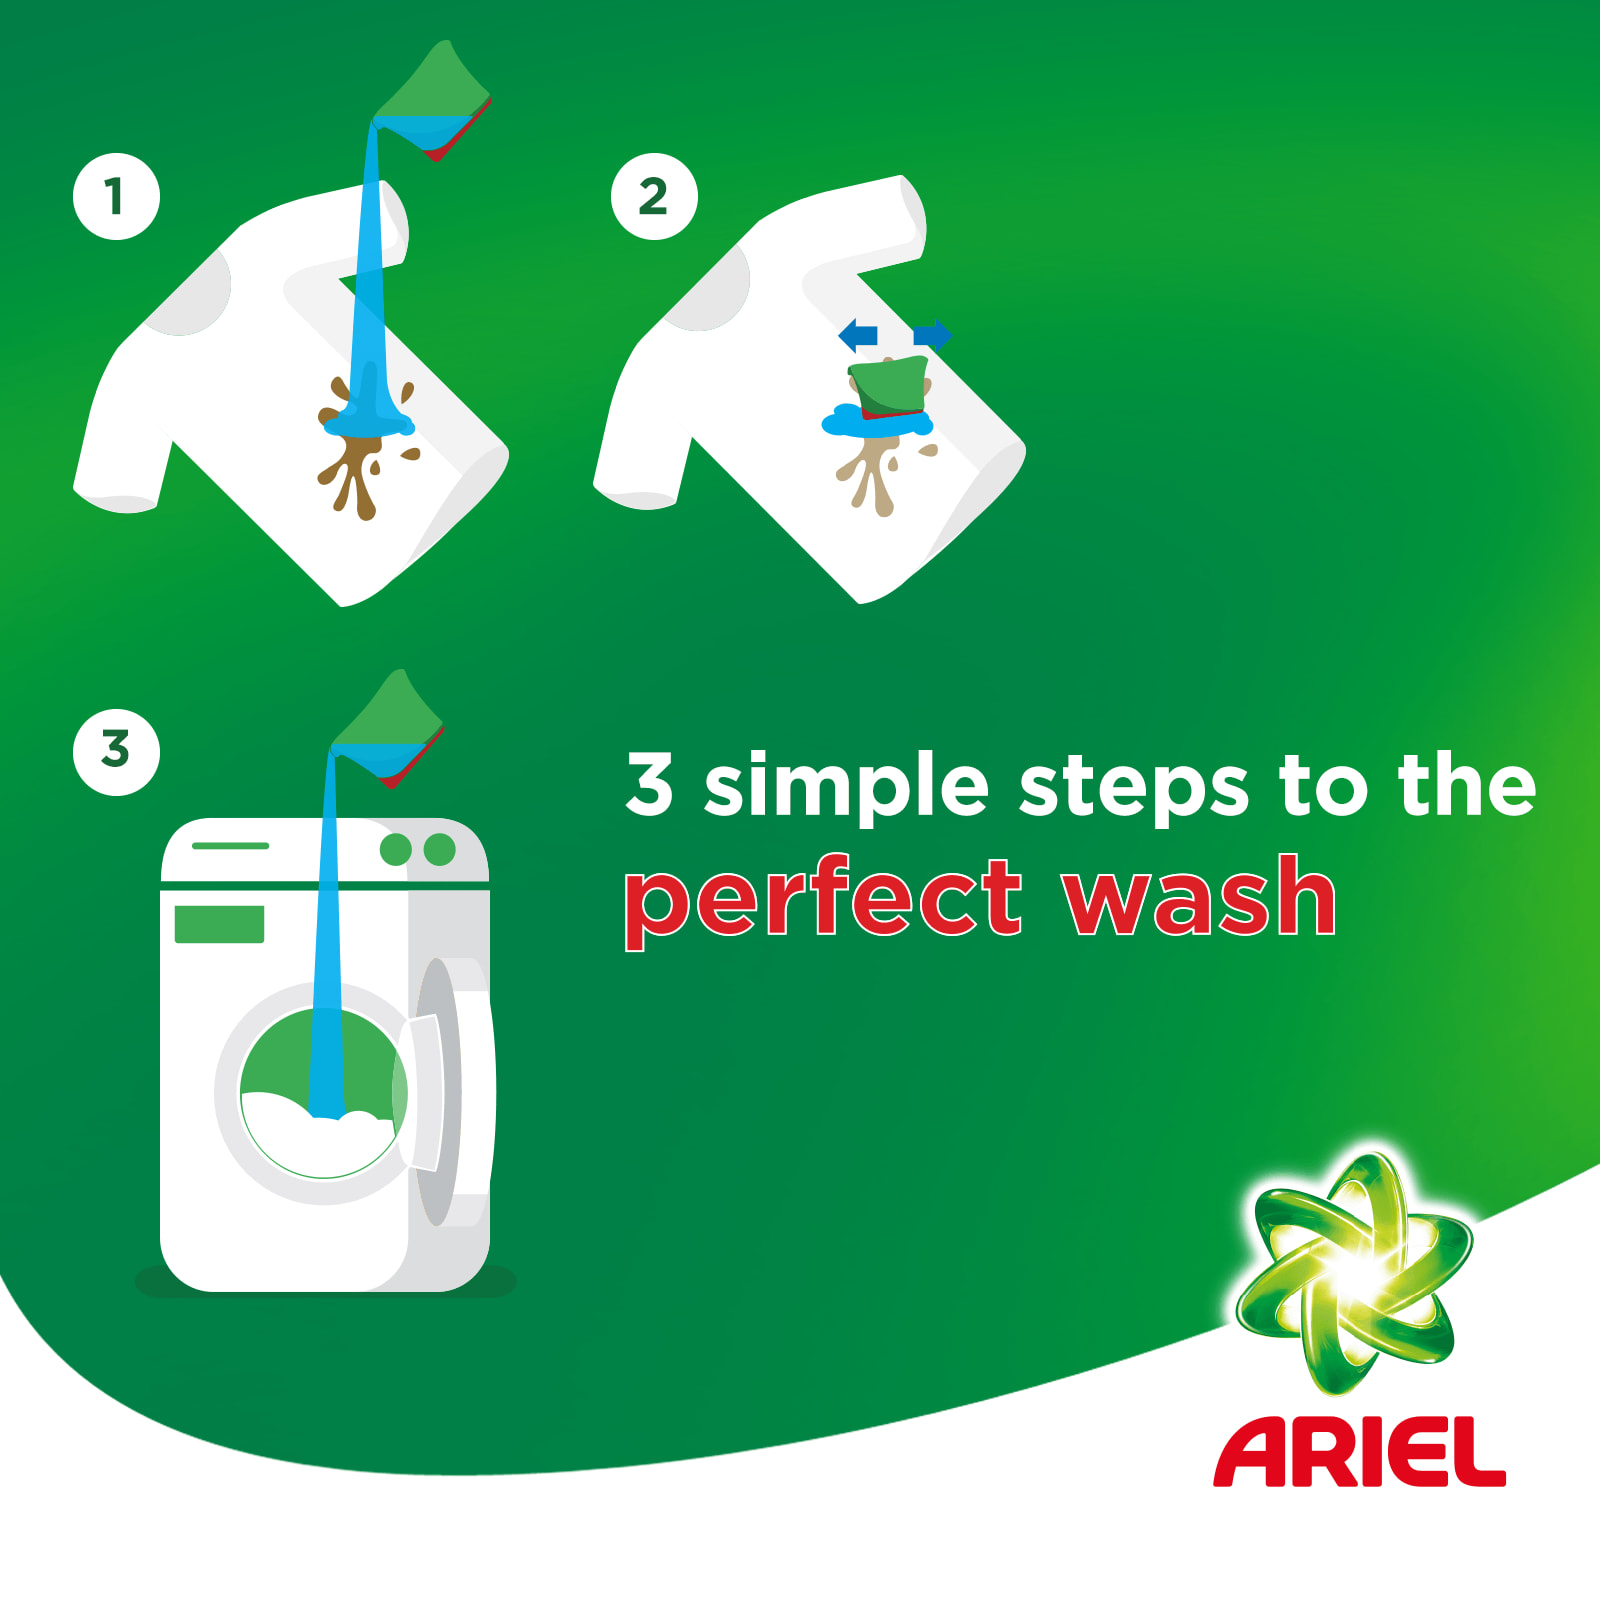 3 simple steps to the perfect wash